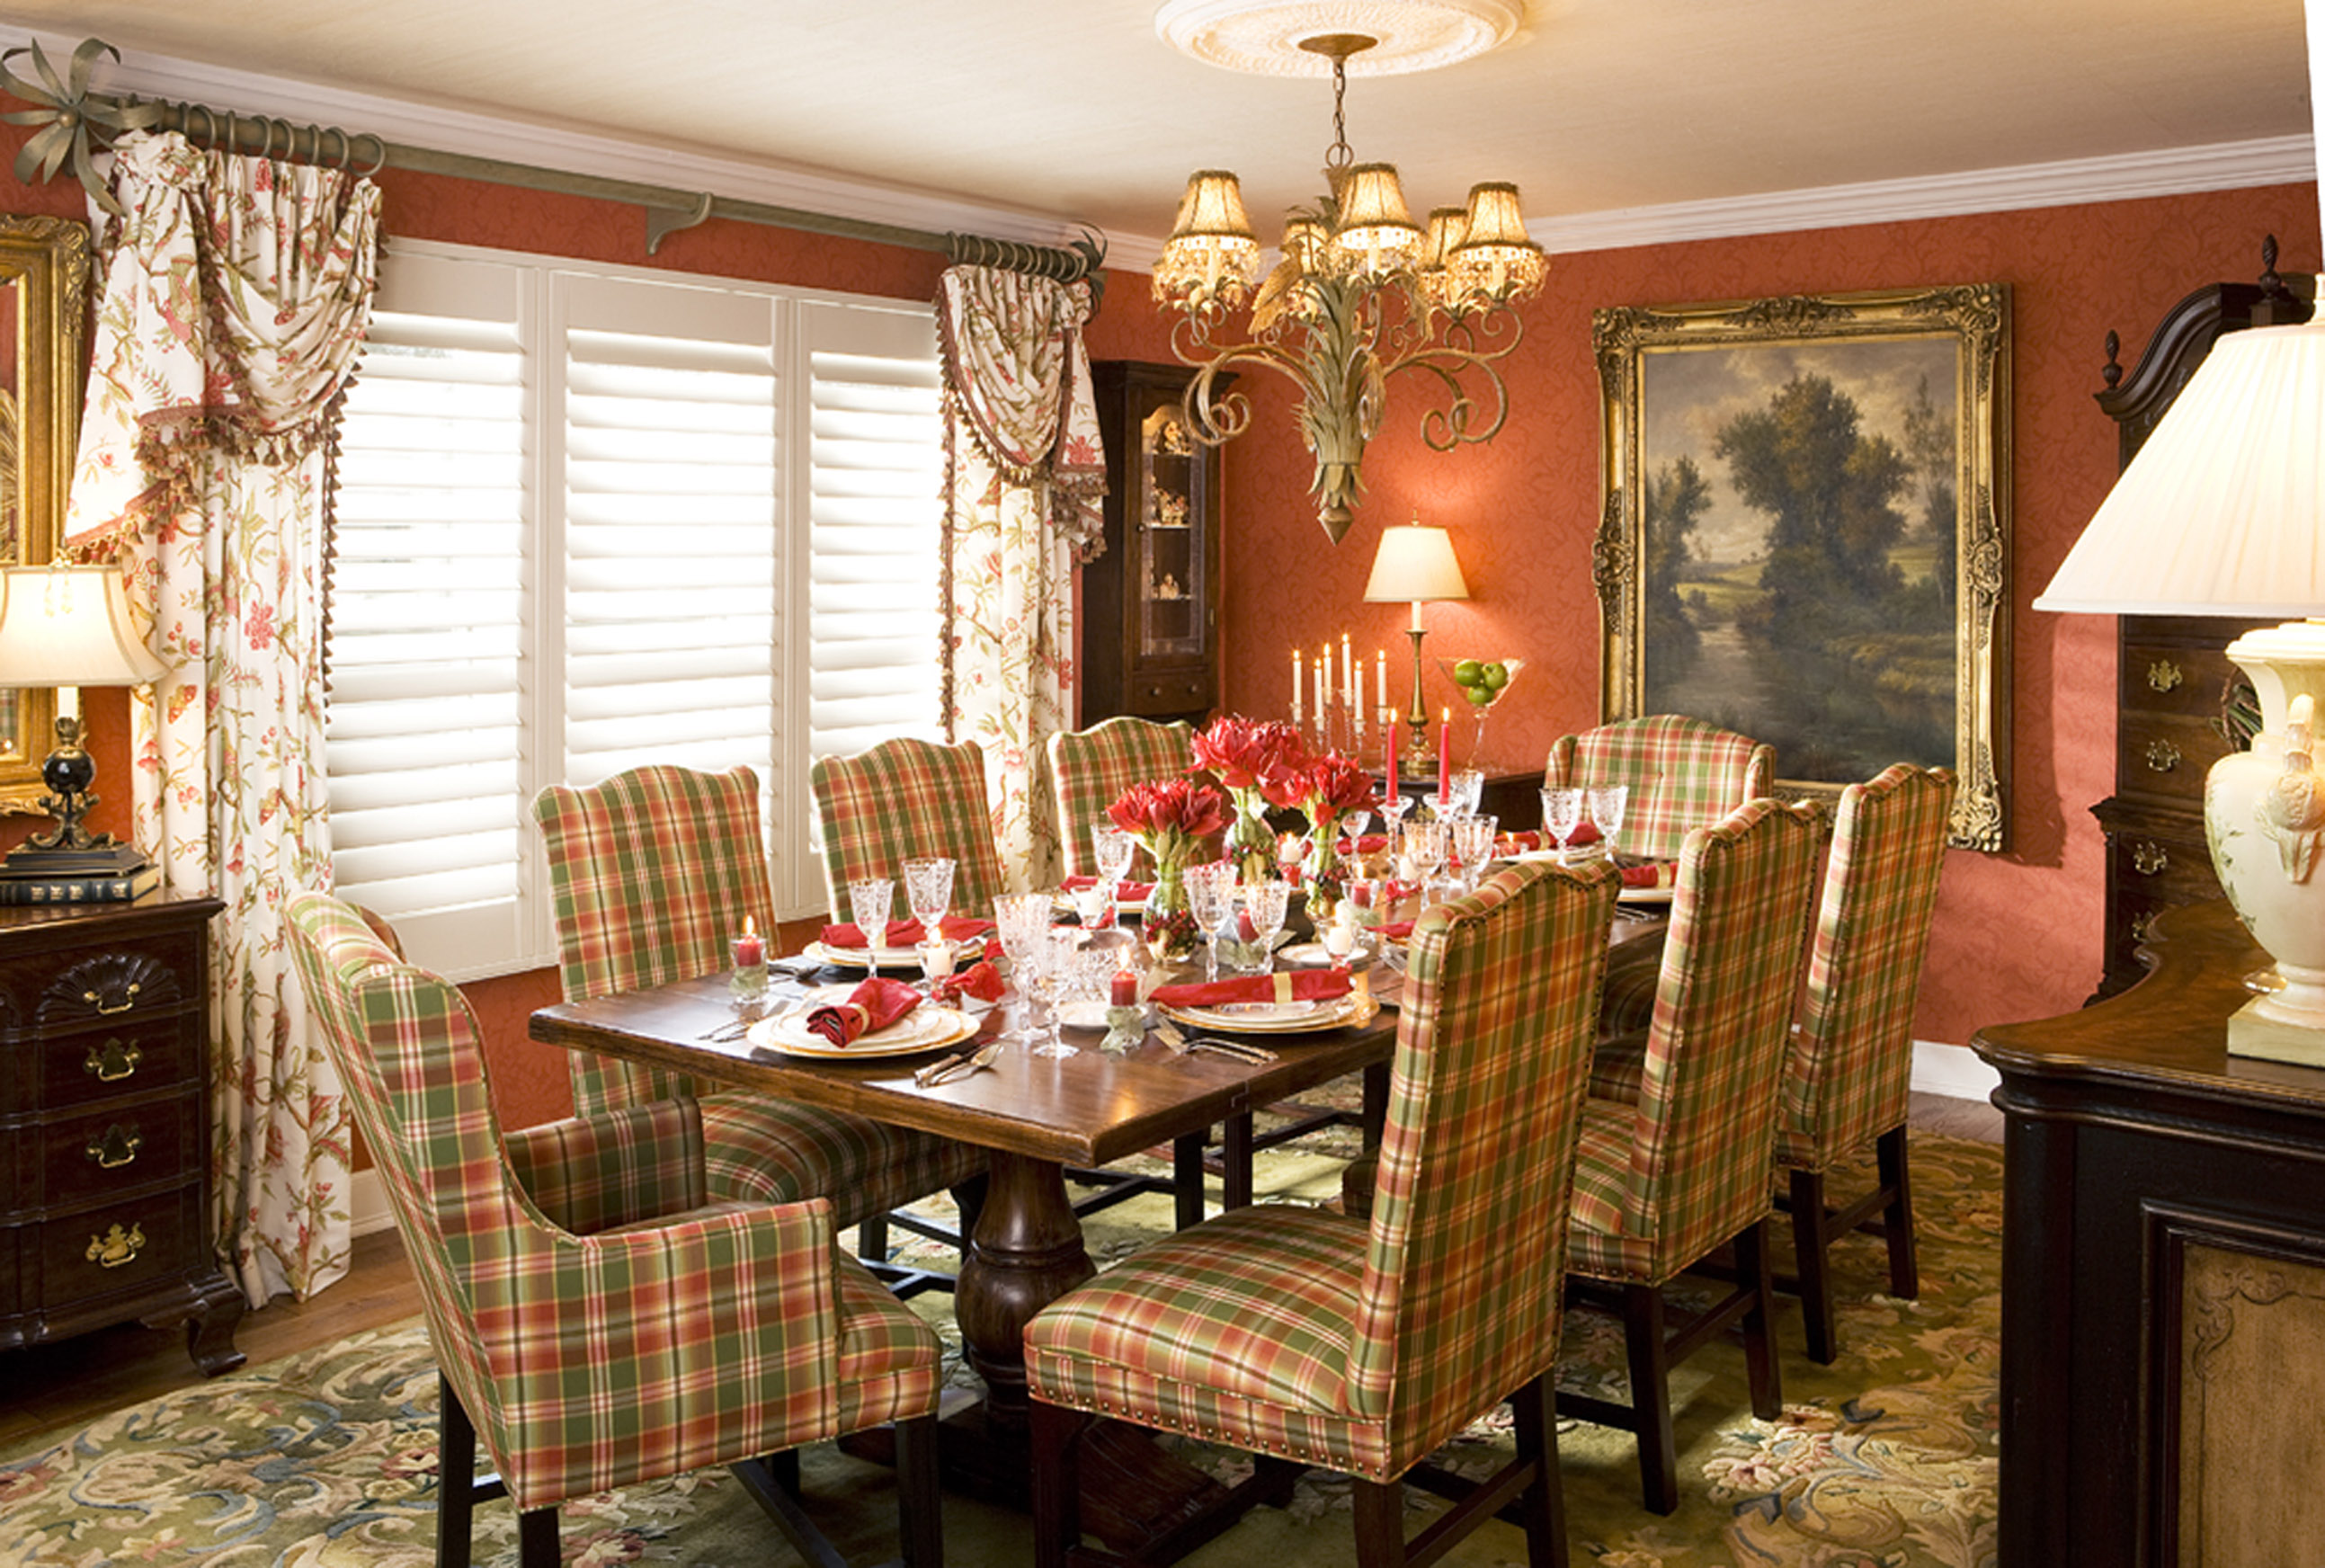 Window Treatments for Dining Room Ideas - HomesFeed